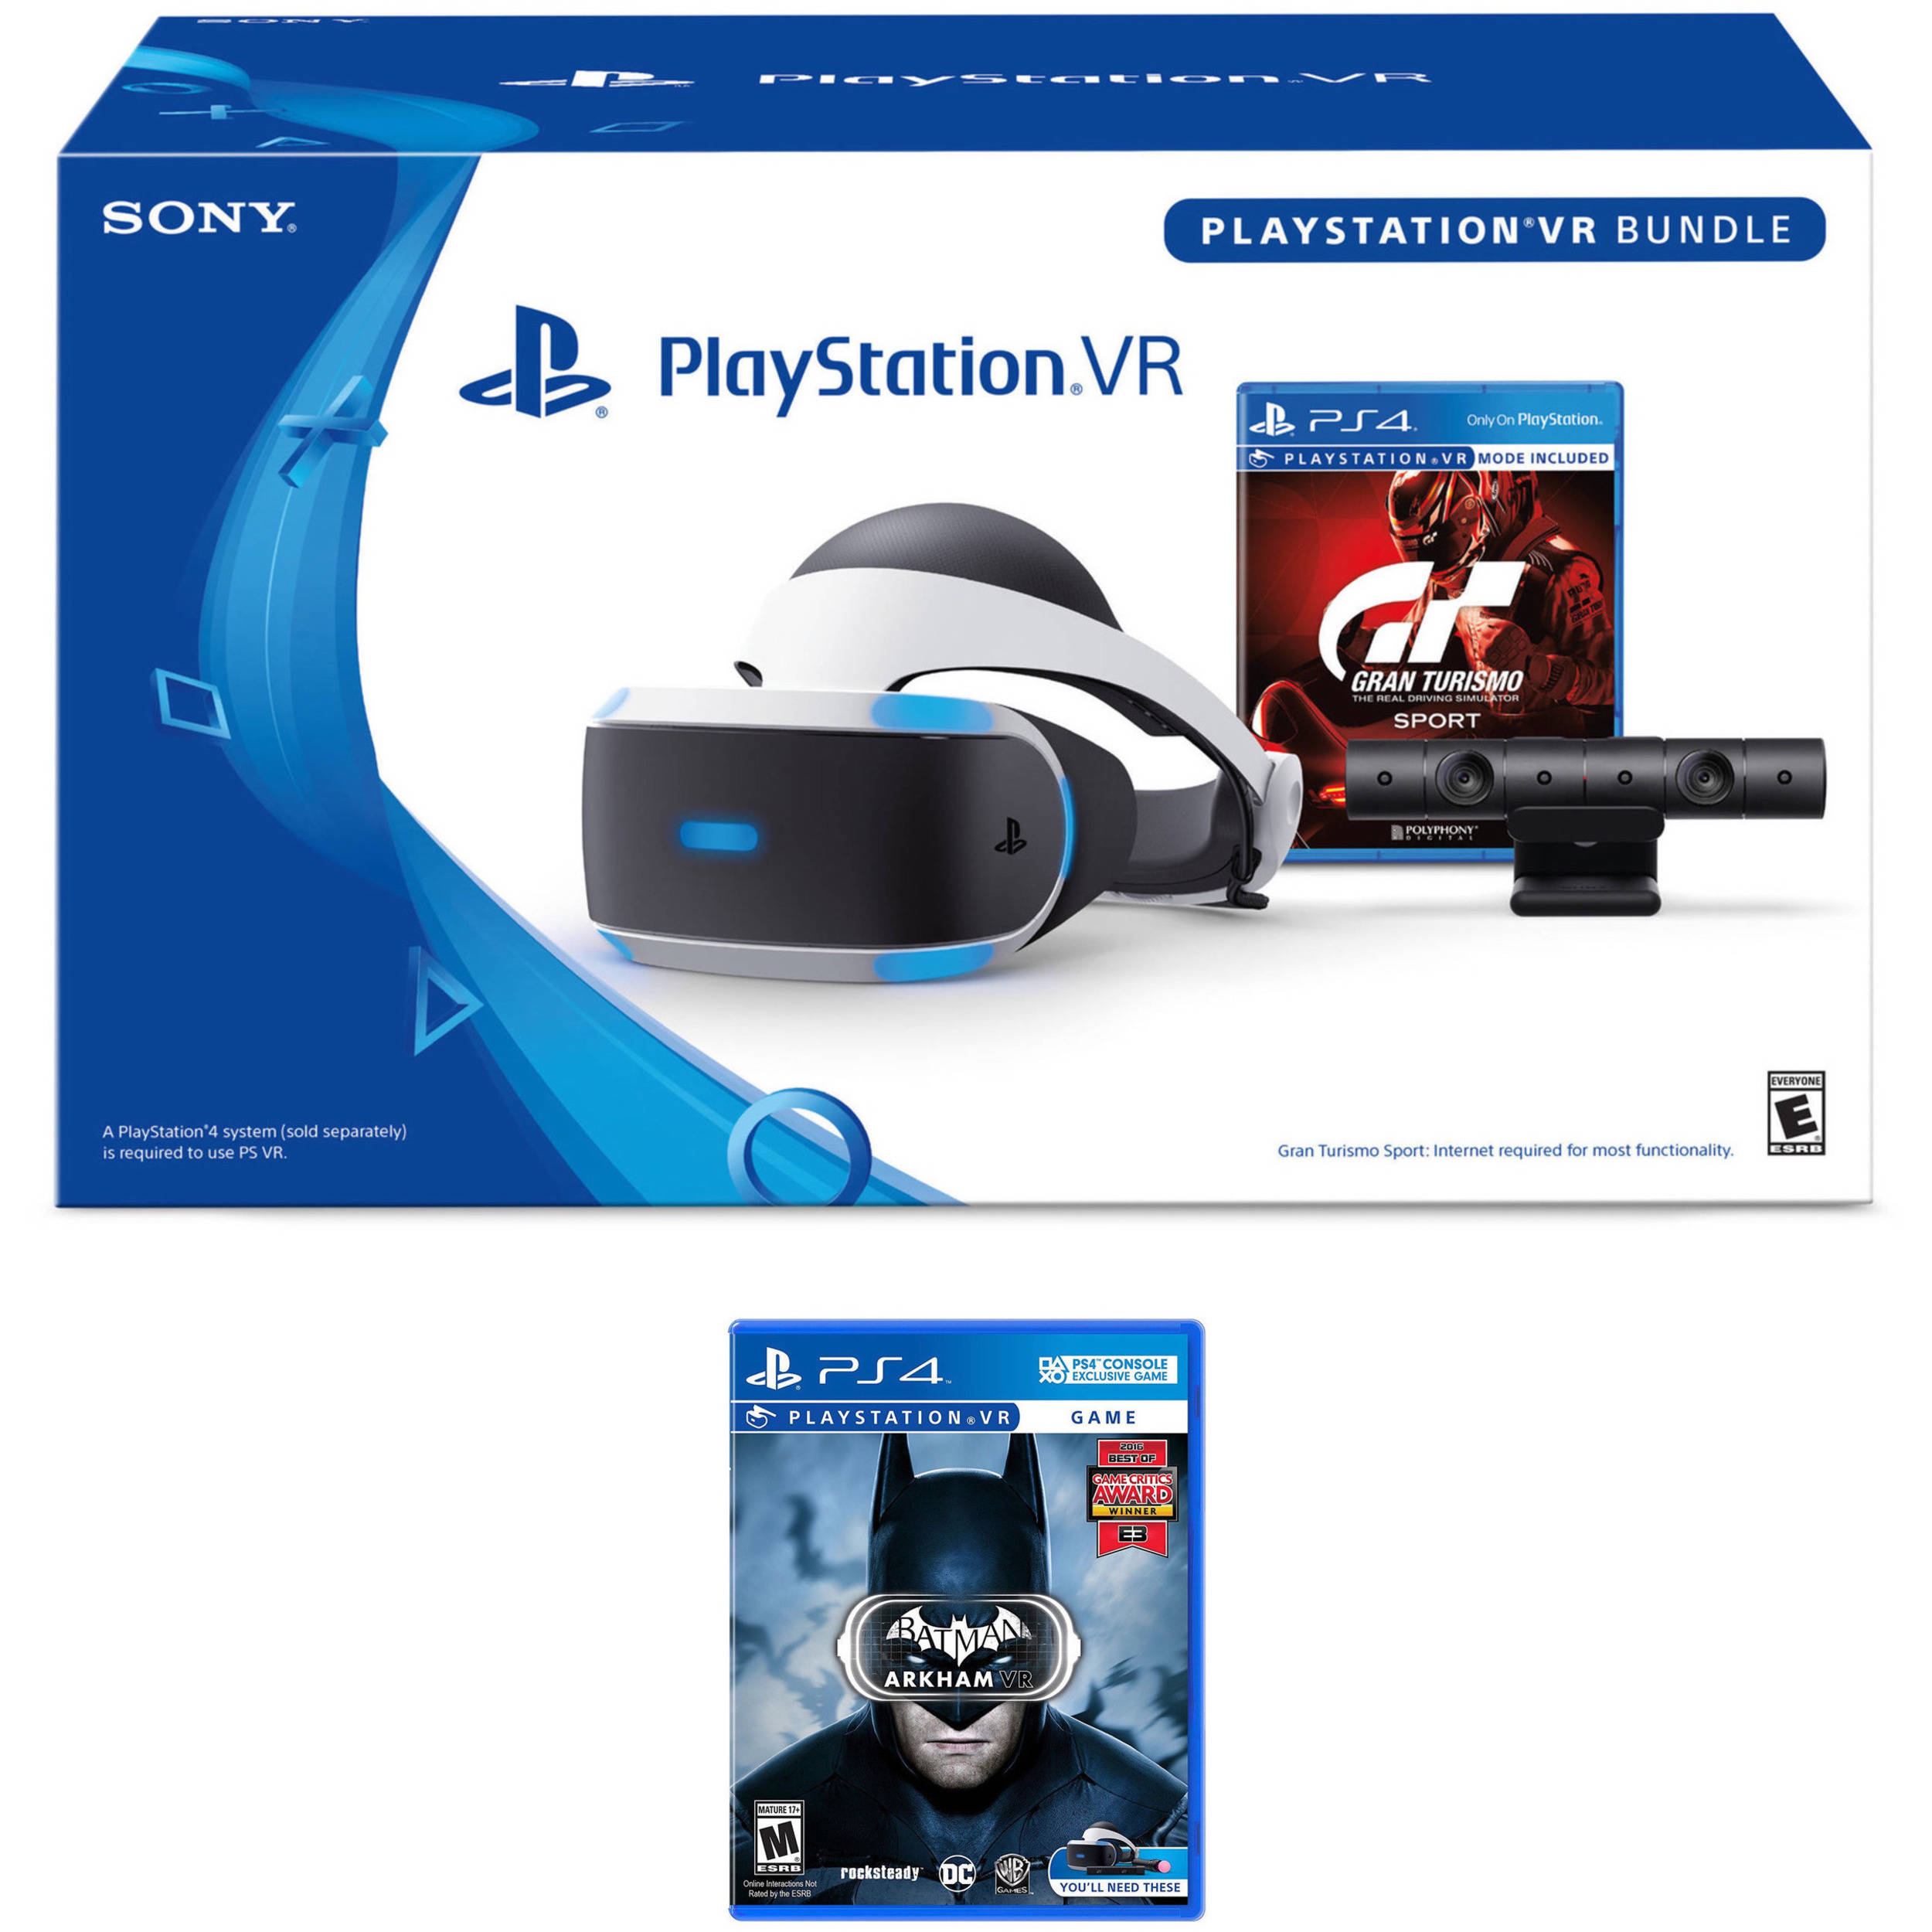 Sony Playstation VR Gran Turismo Sport Bundle Kit With Batman Arkham